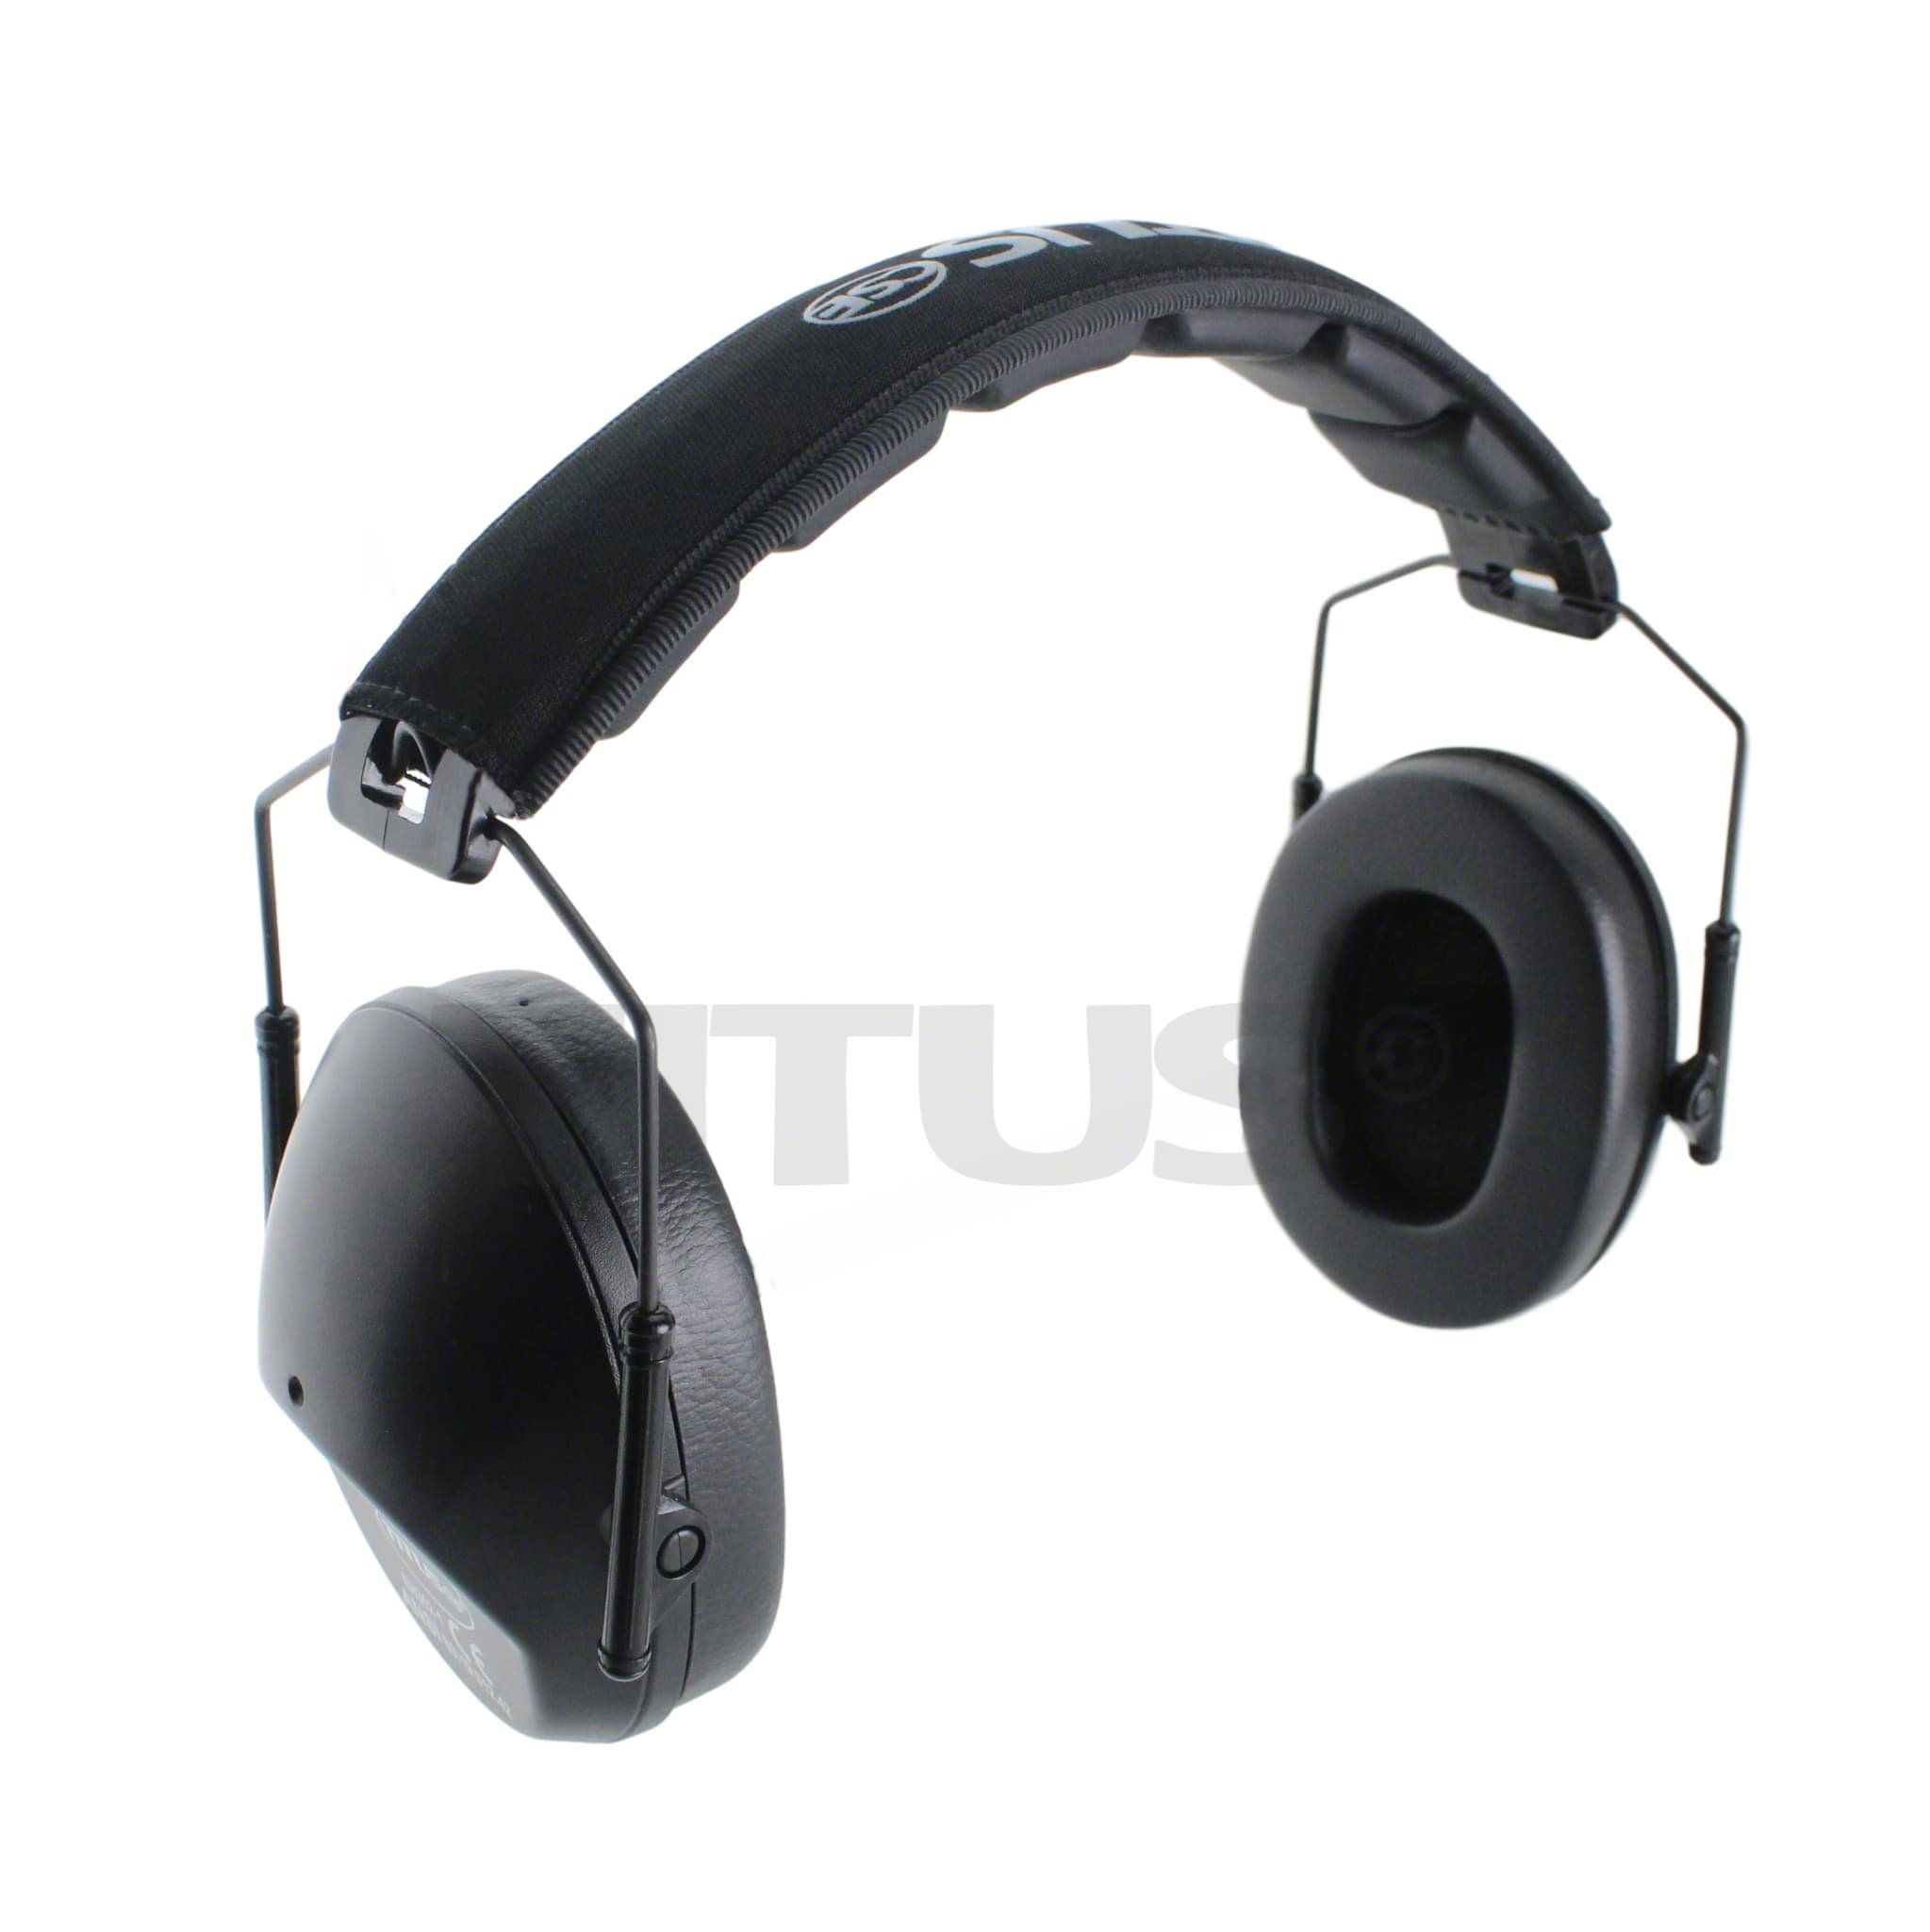 TITUS Low-Profile 34 Decibel NRR Safety Earmuffs (No Pouch, Black) by Titus (Image #5)